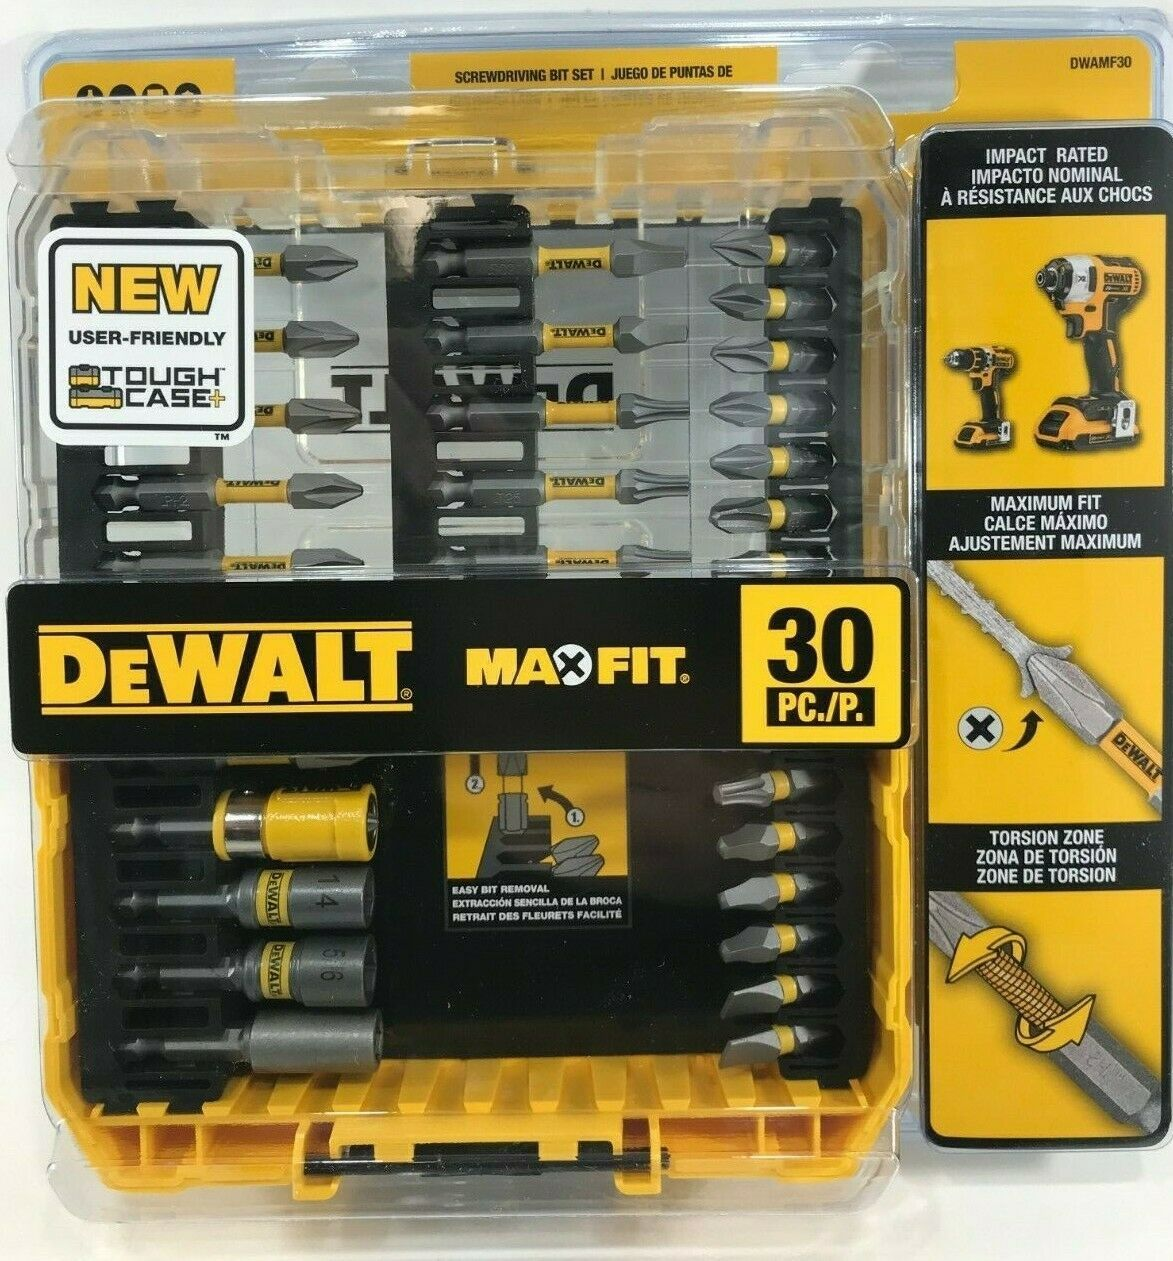 Primary image for DeWalt - DWAMF30 - MAXFIT Steel Driving Bit Set (30-Piece) with Sleeve